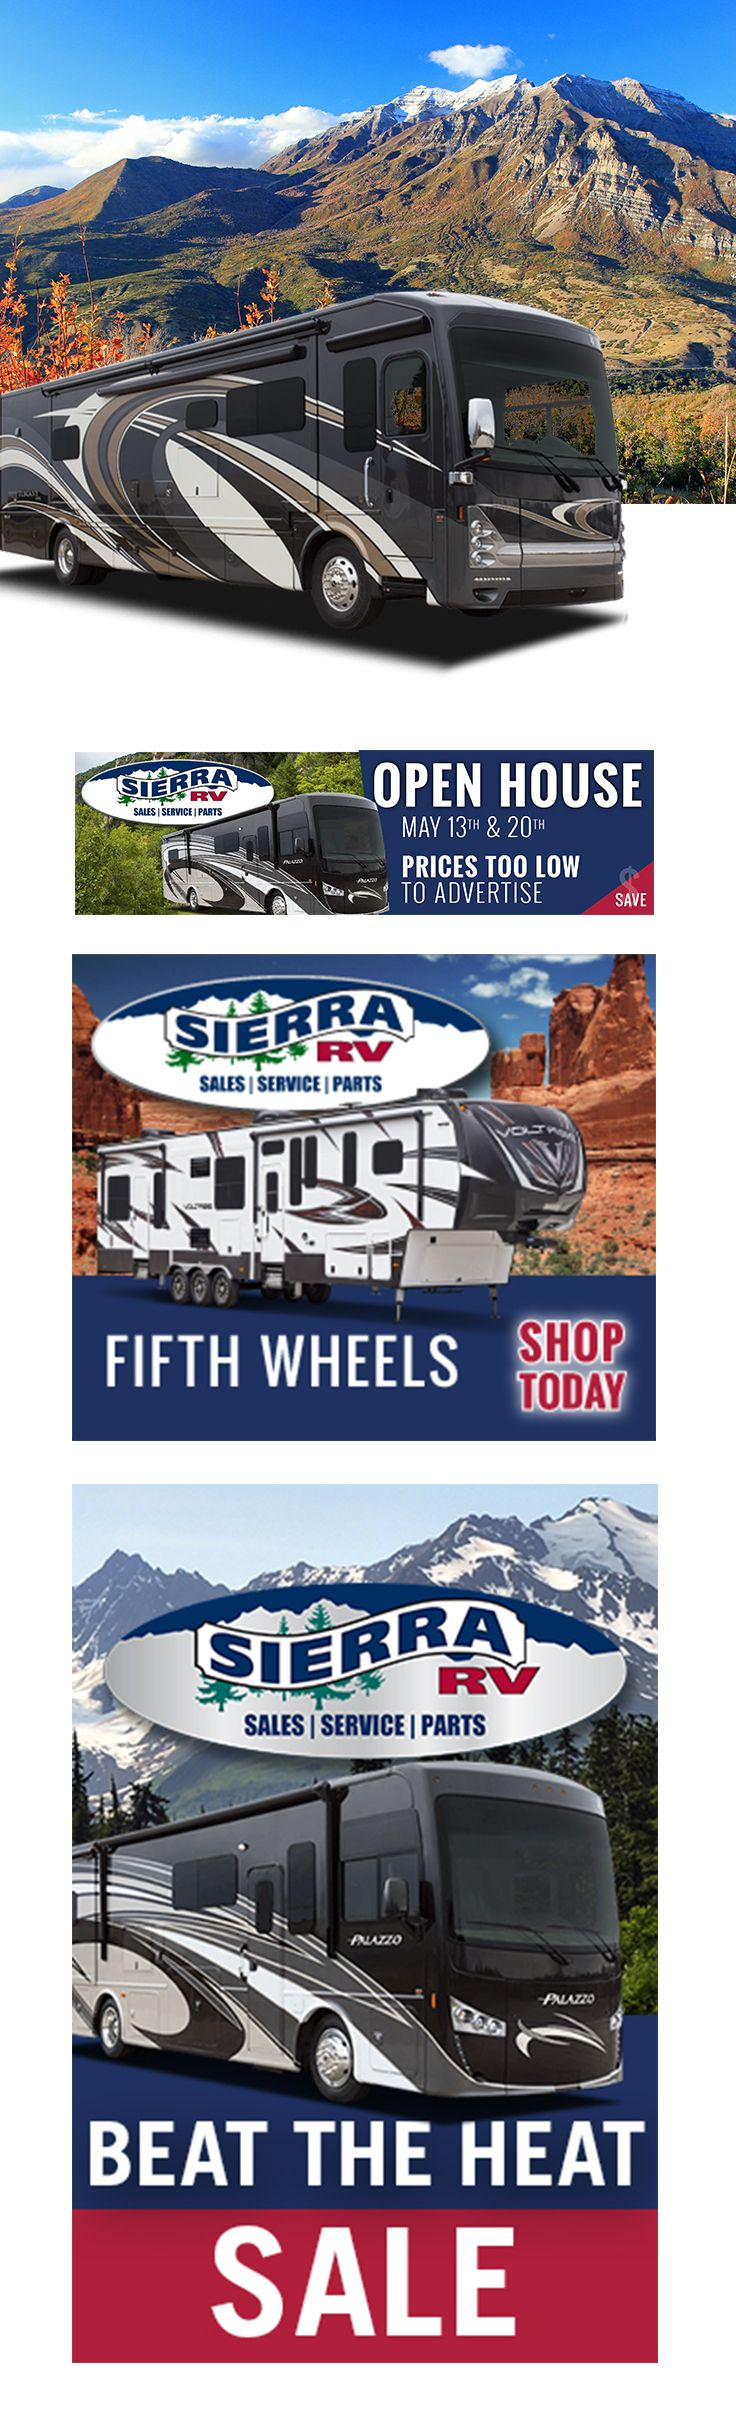 Digital ad design for Sierra RV by Epic Marketing. #digitalads #digitaladvertising #rvs #marketing #epicmarketing